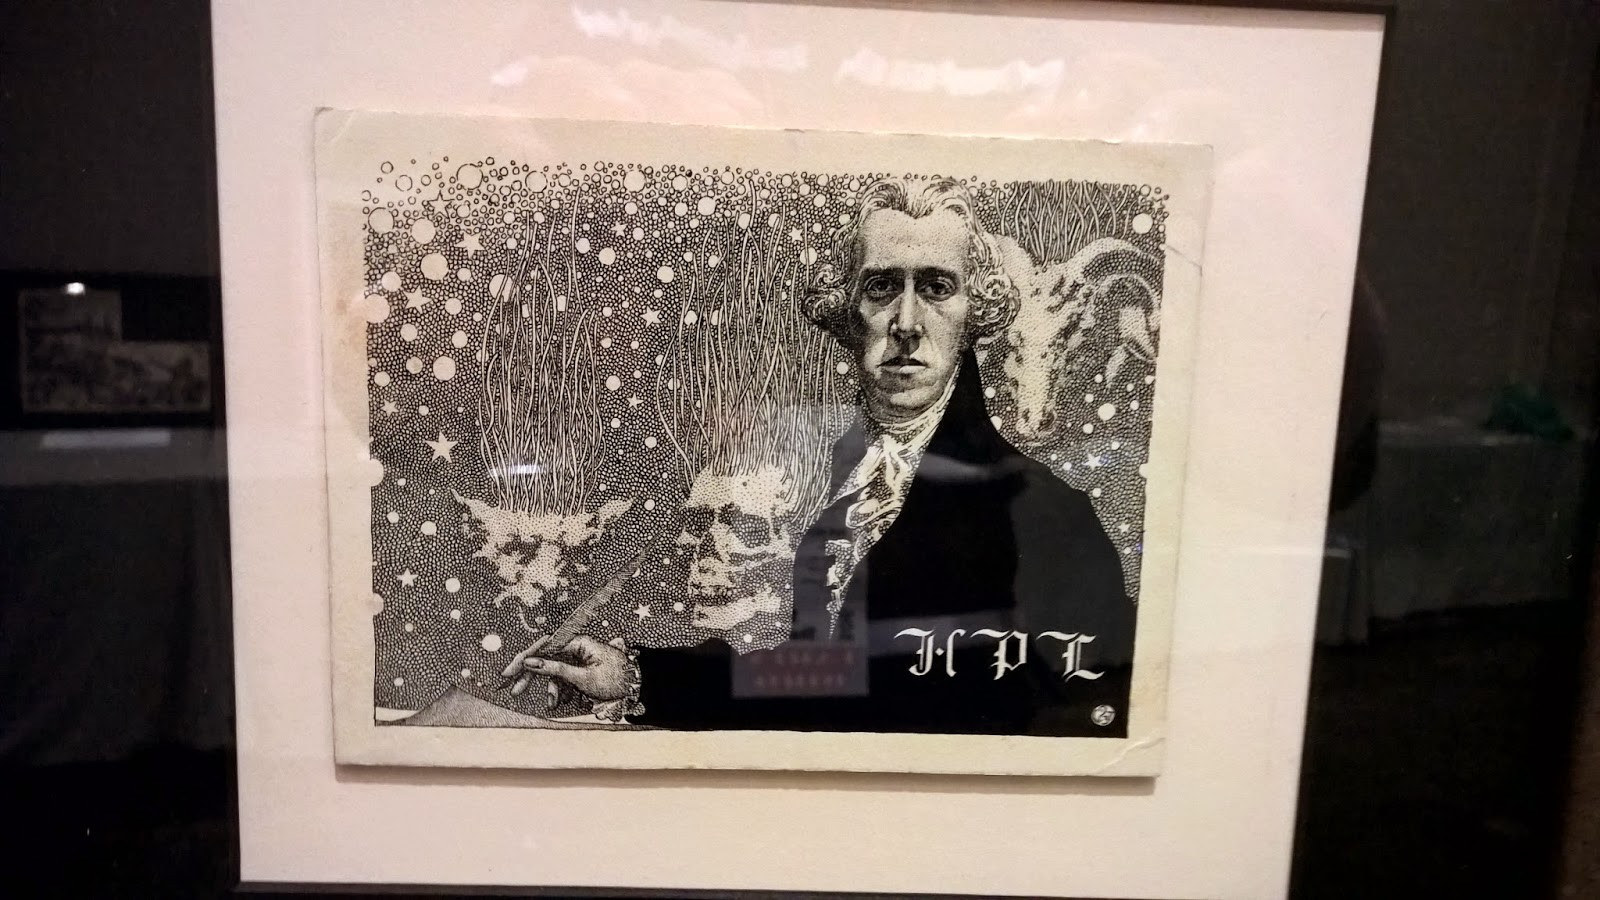 H.P. Lovecraft portrait by Virgil Finlay